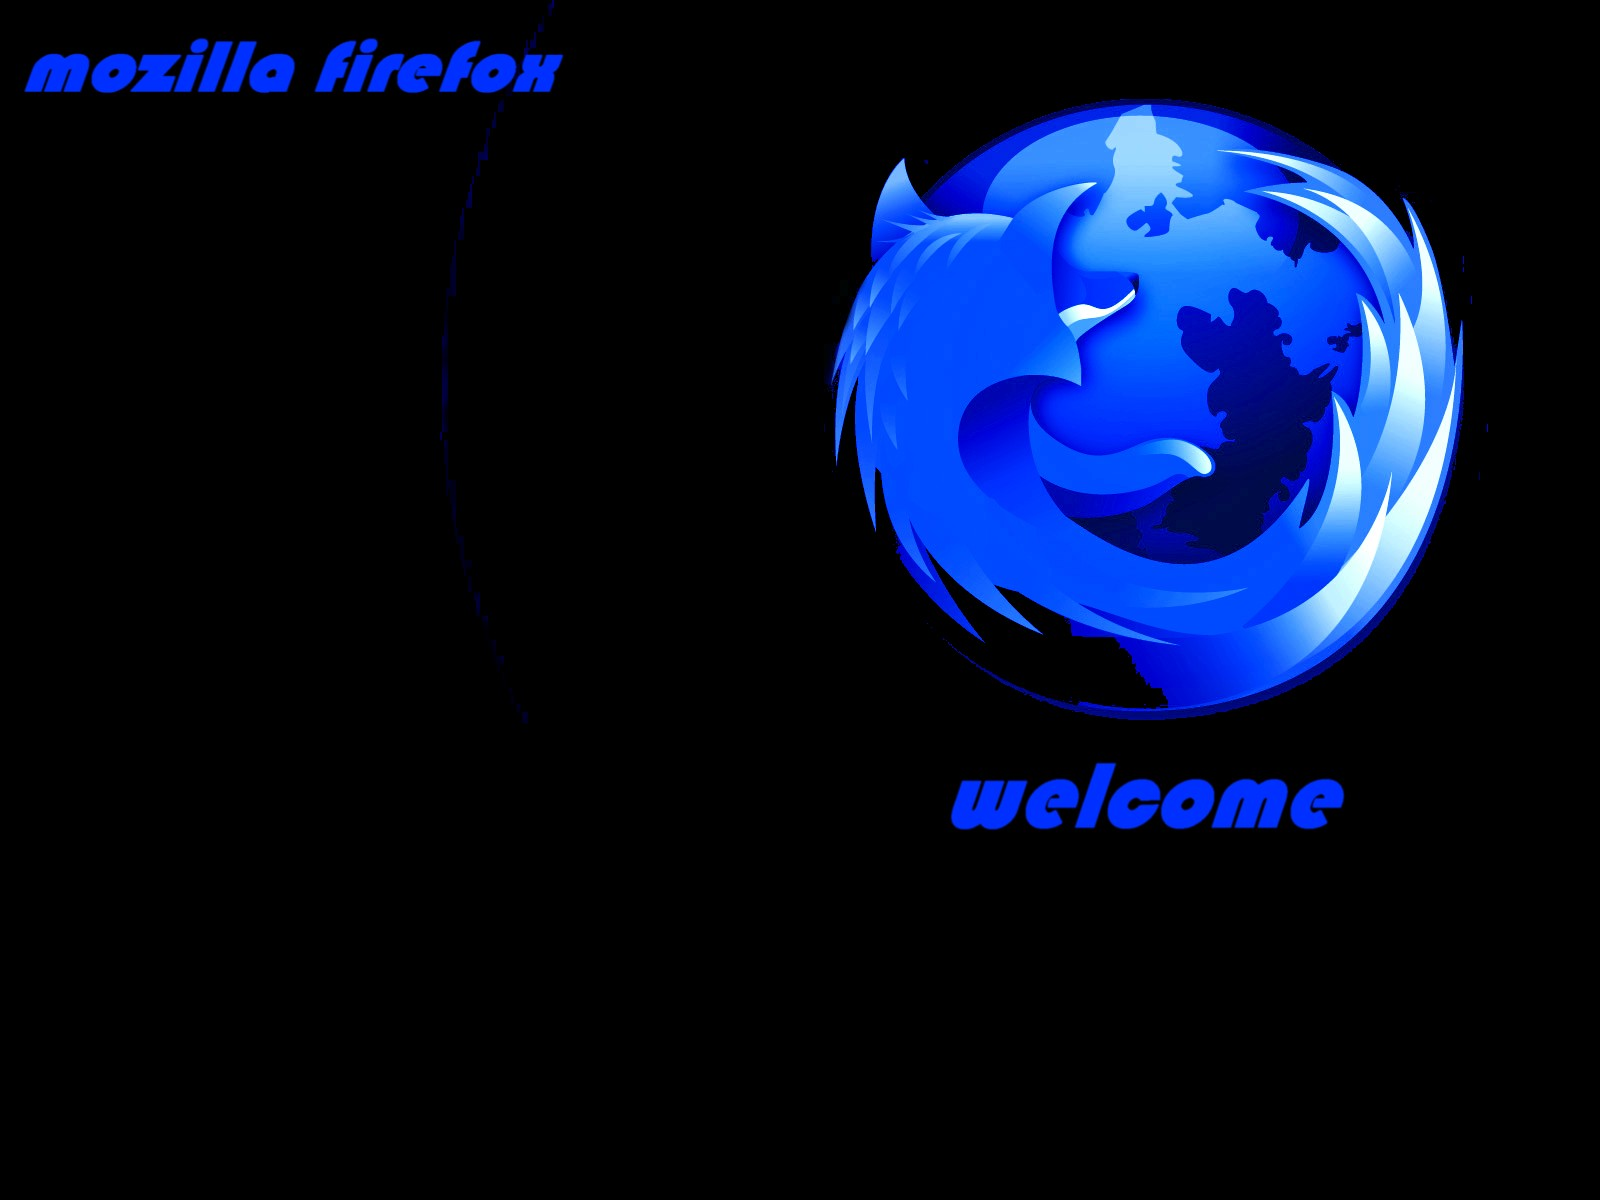 Download computer firefox wallpaper Firefox 15 1600x1200